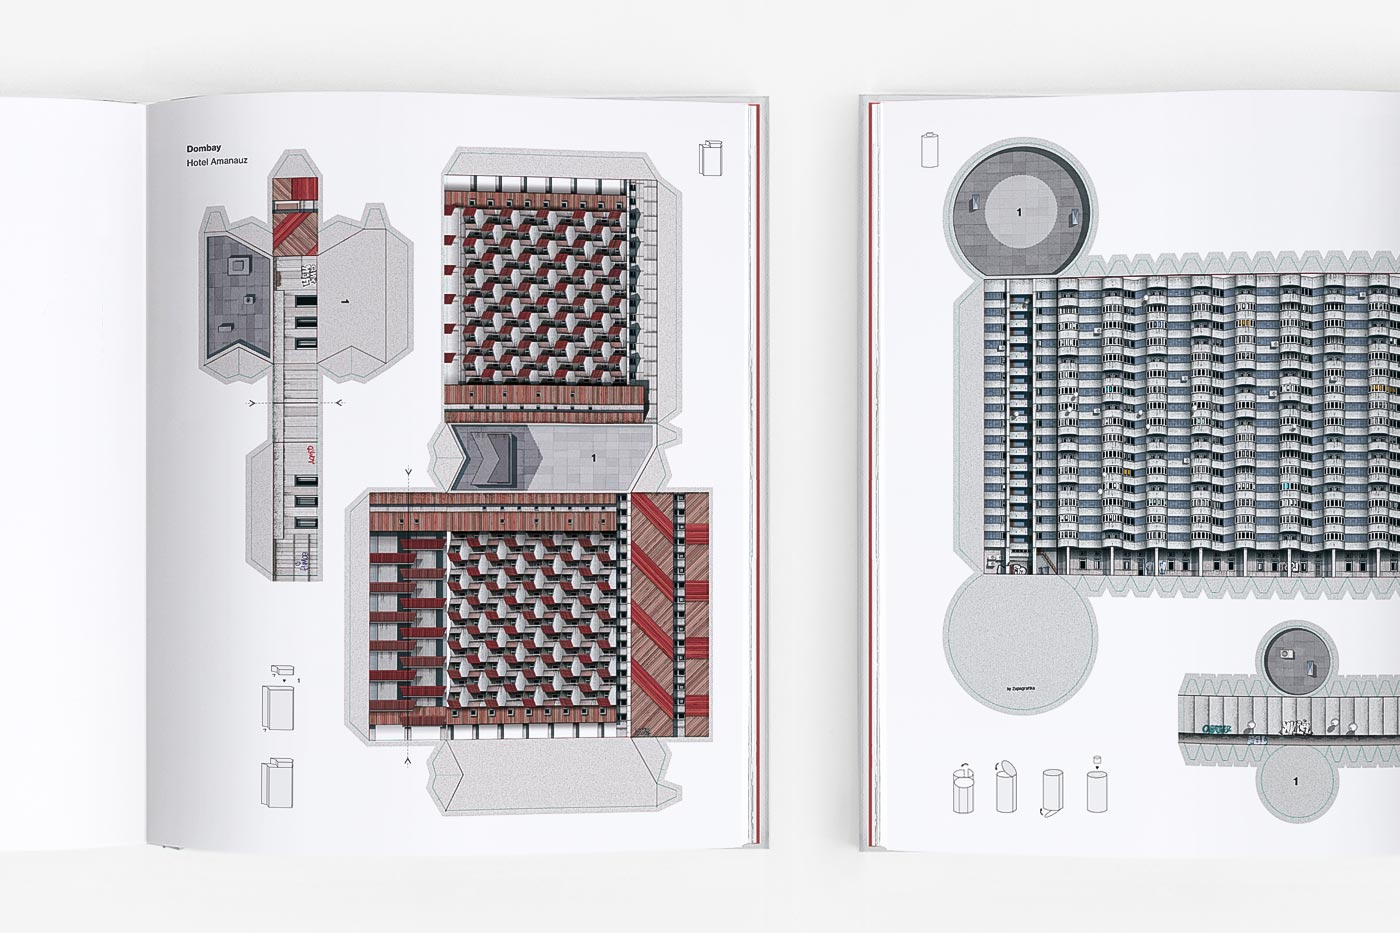 Brutal East Volume II contains nine paper models to press-out and build